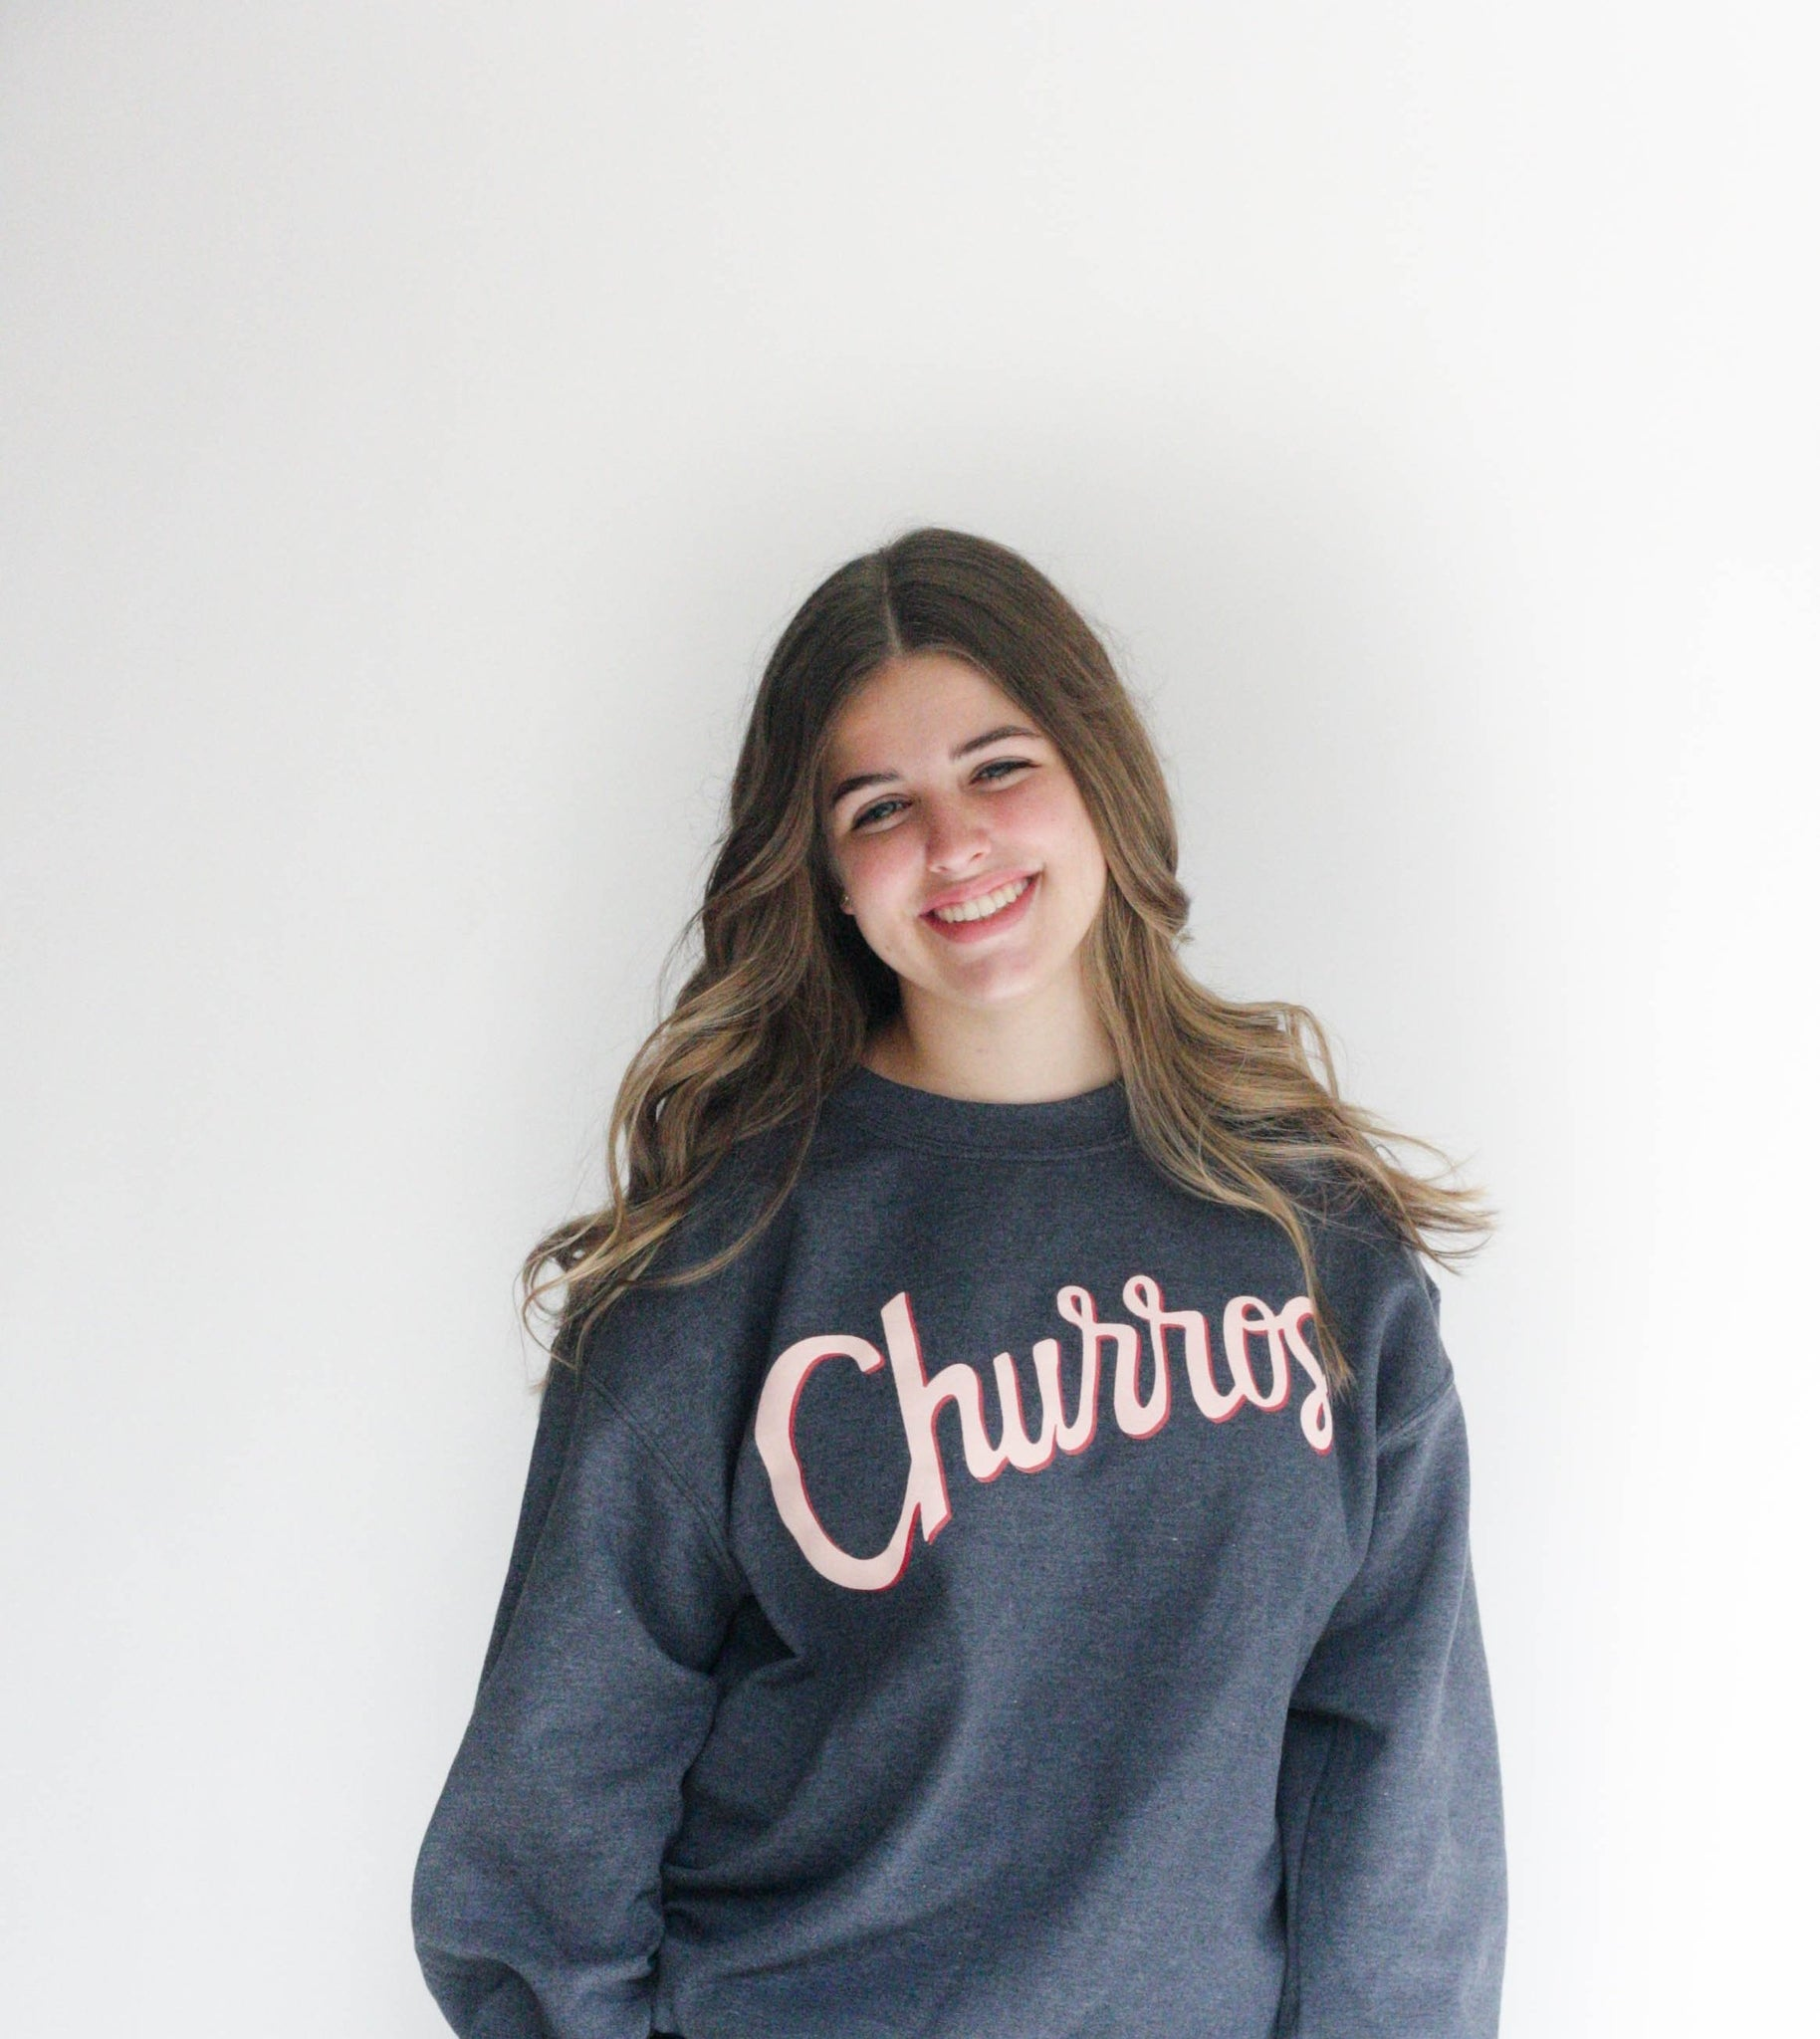 Churros - Adult Sweater